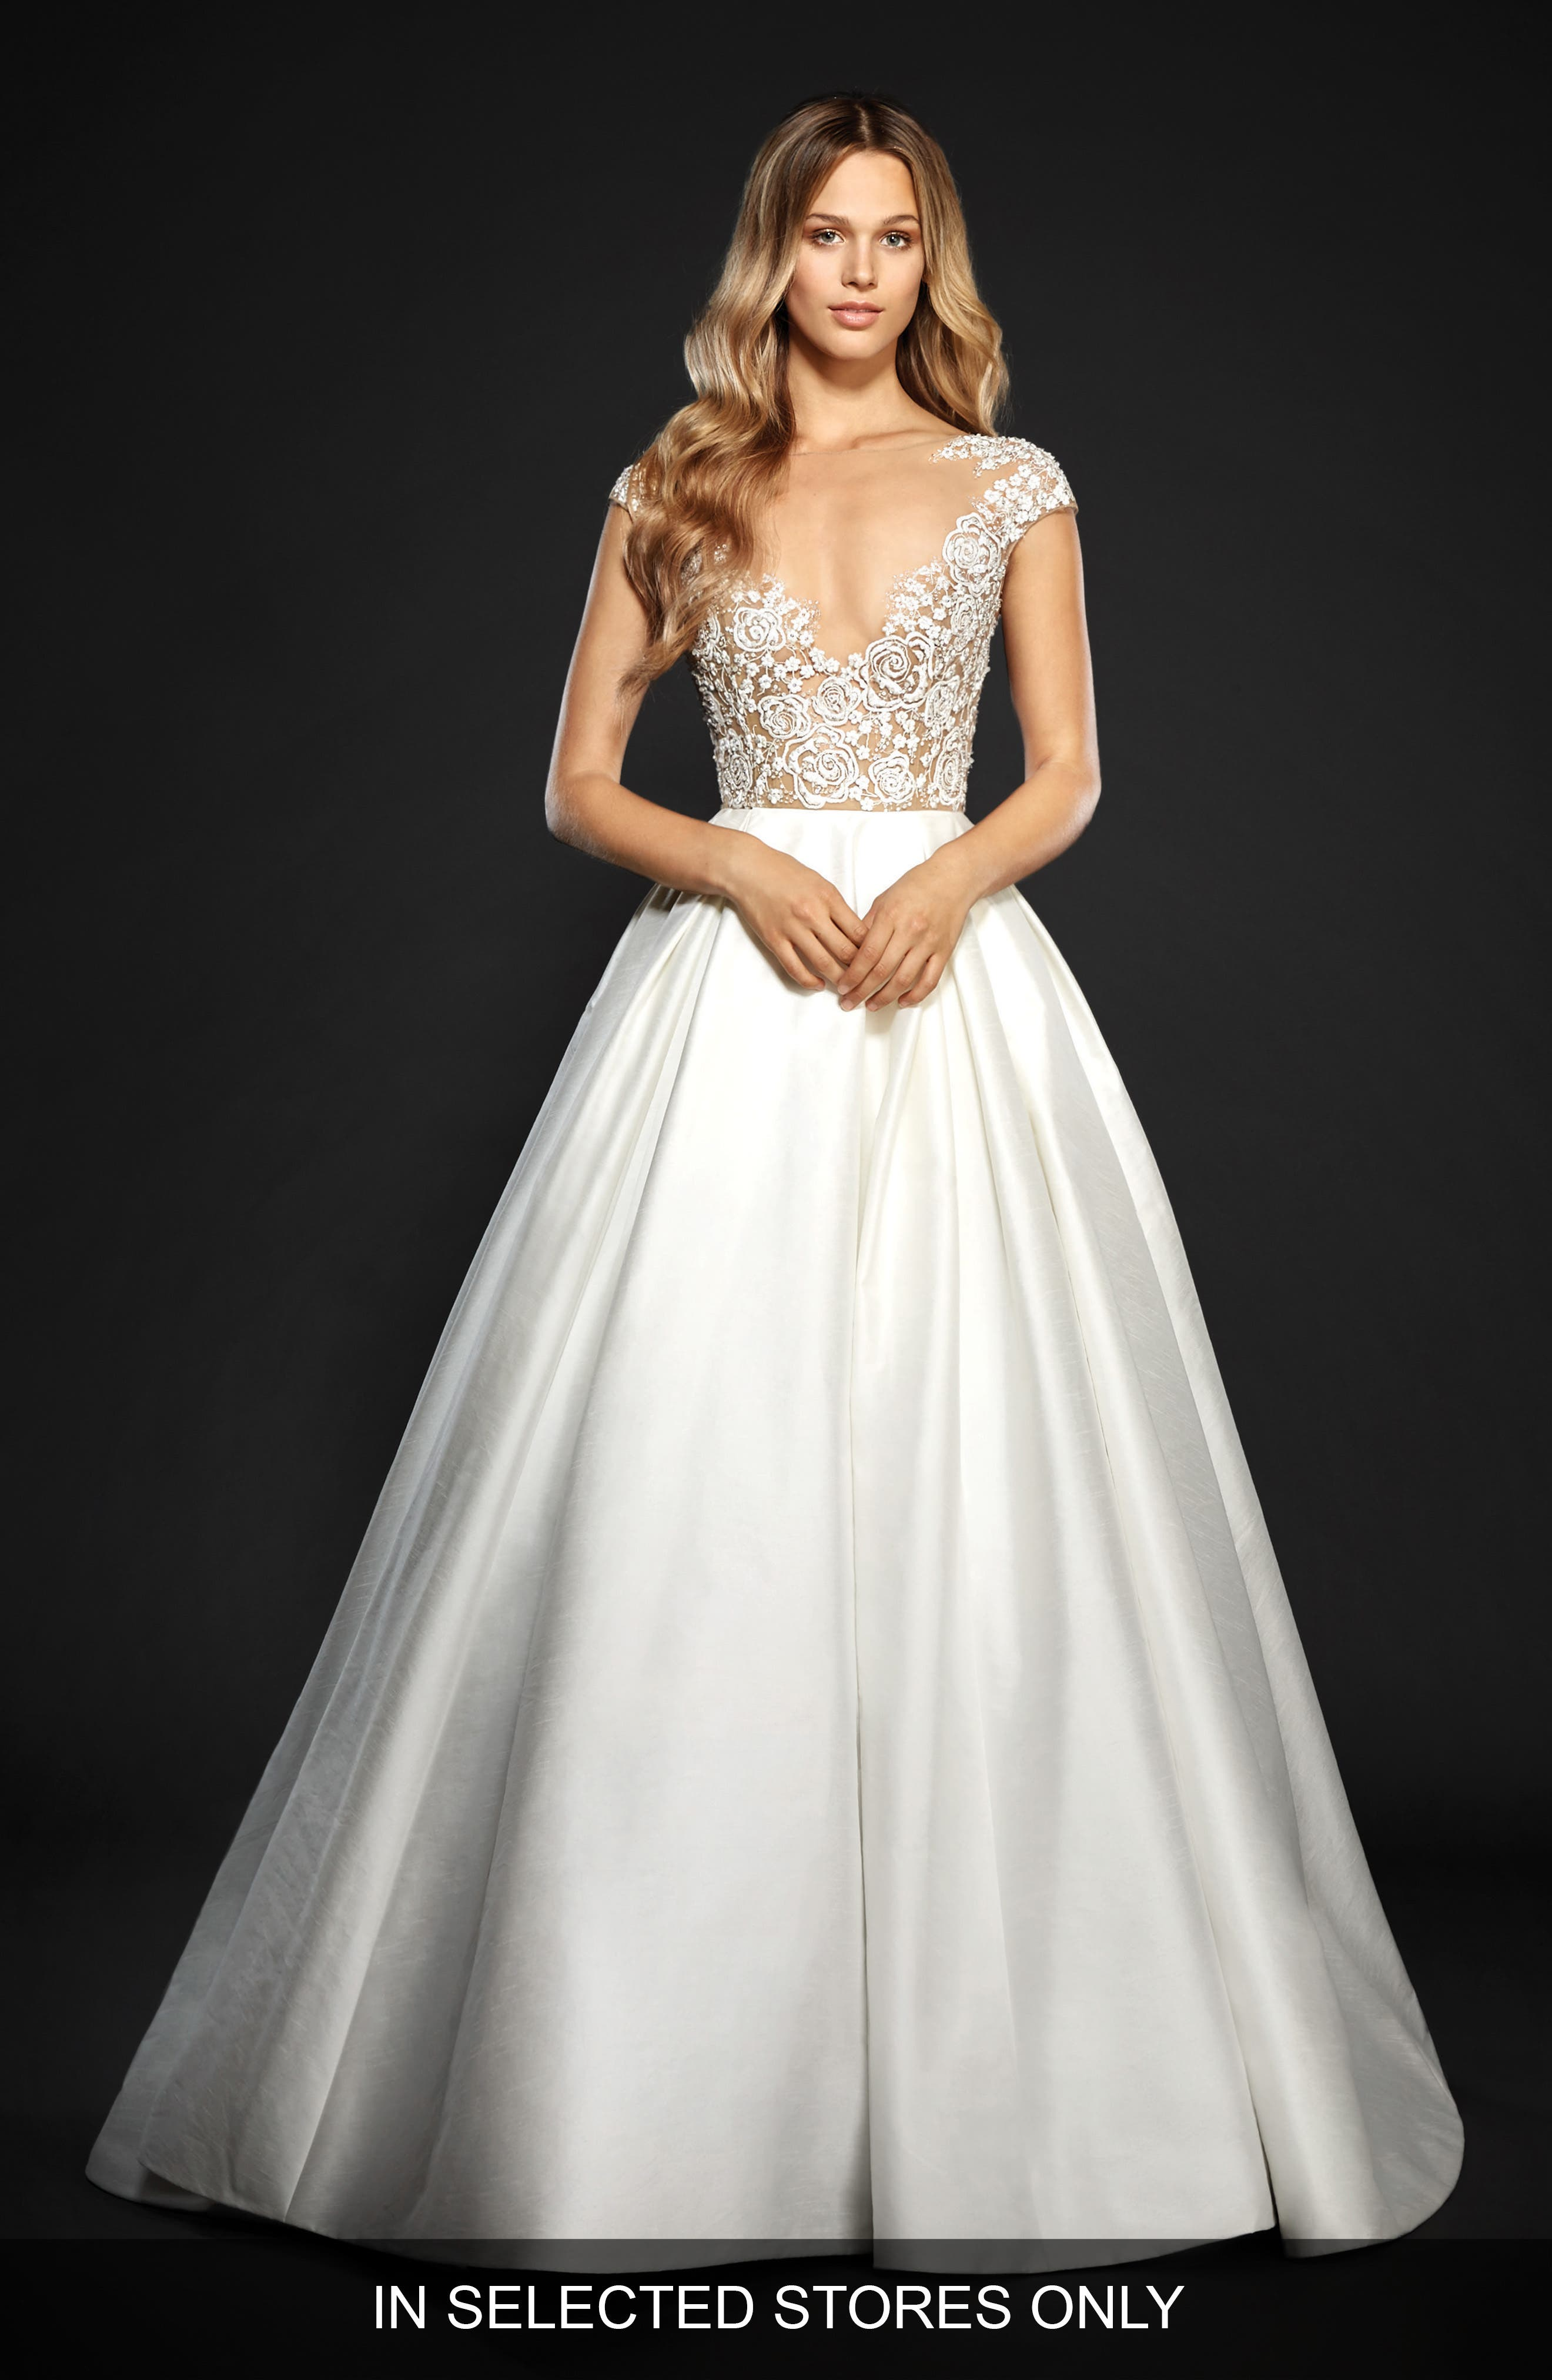 Chandler Floral Embroidered Illusion Ballgown,                             Alternate thumbnail 4, color,                             IVORY